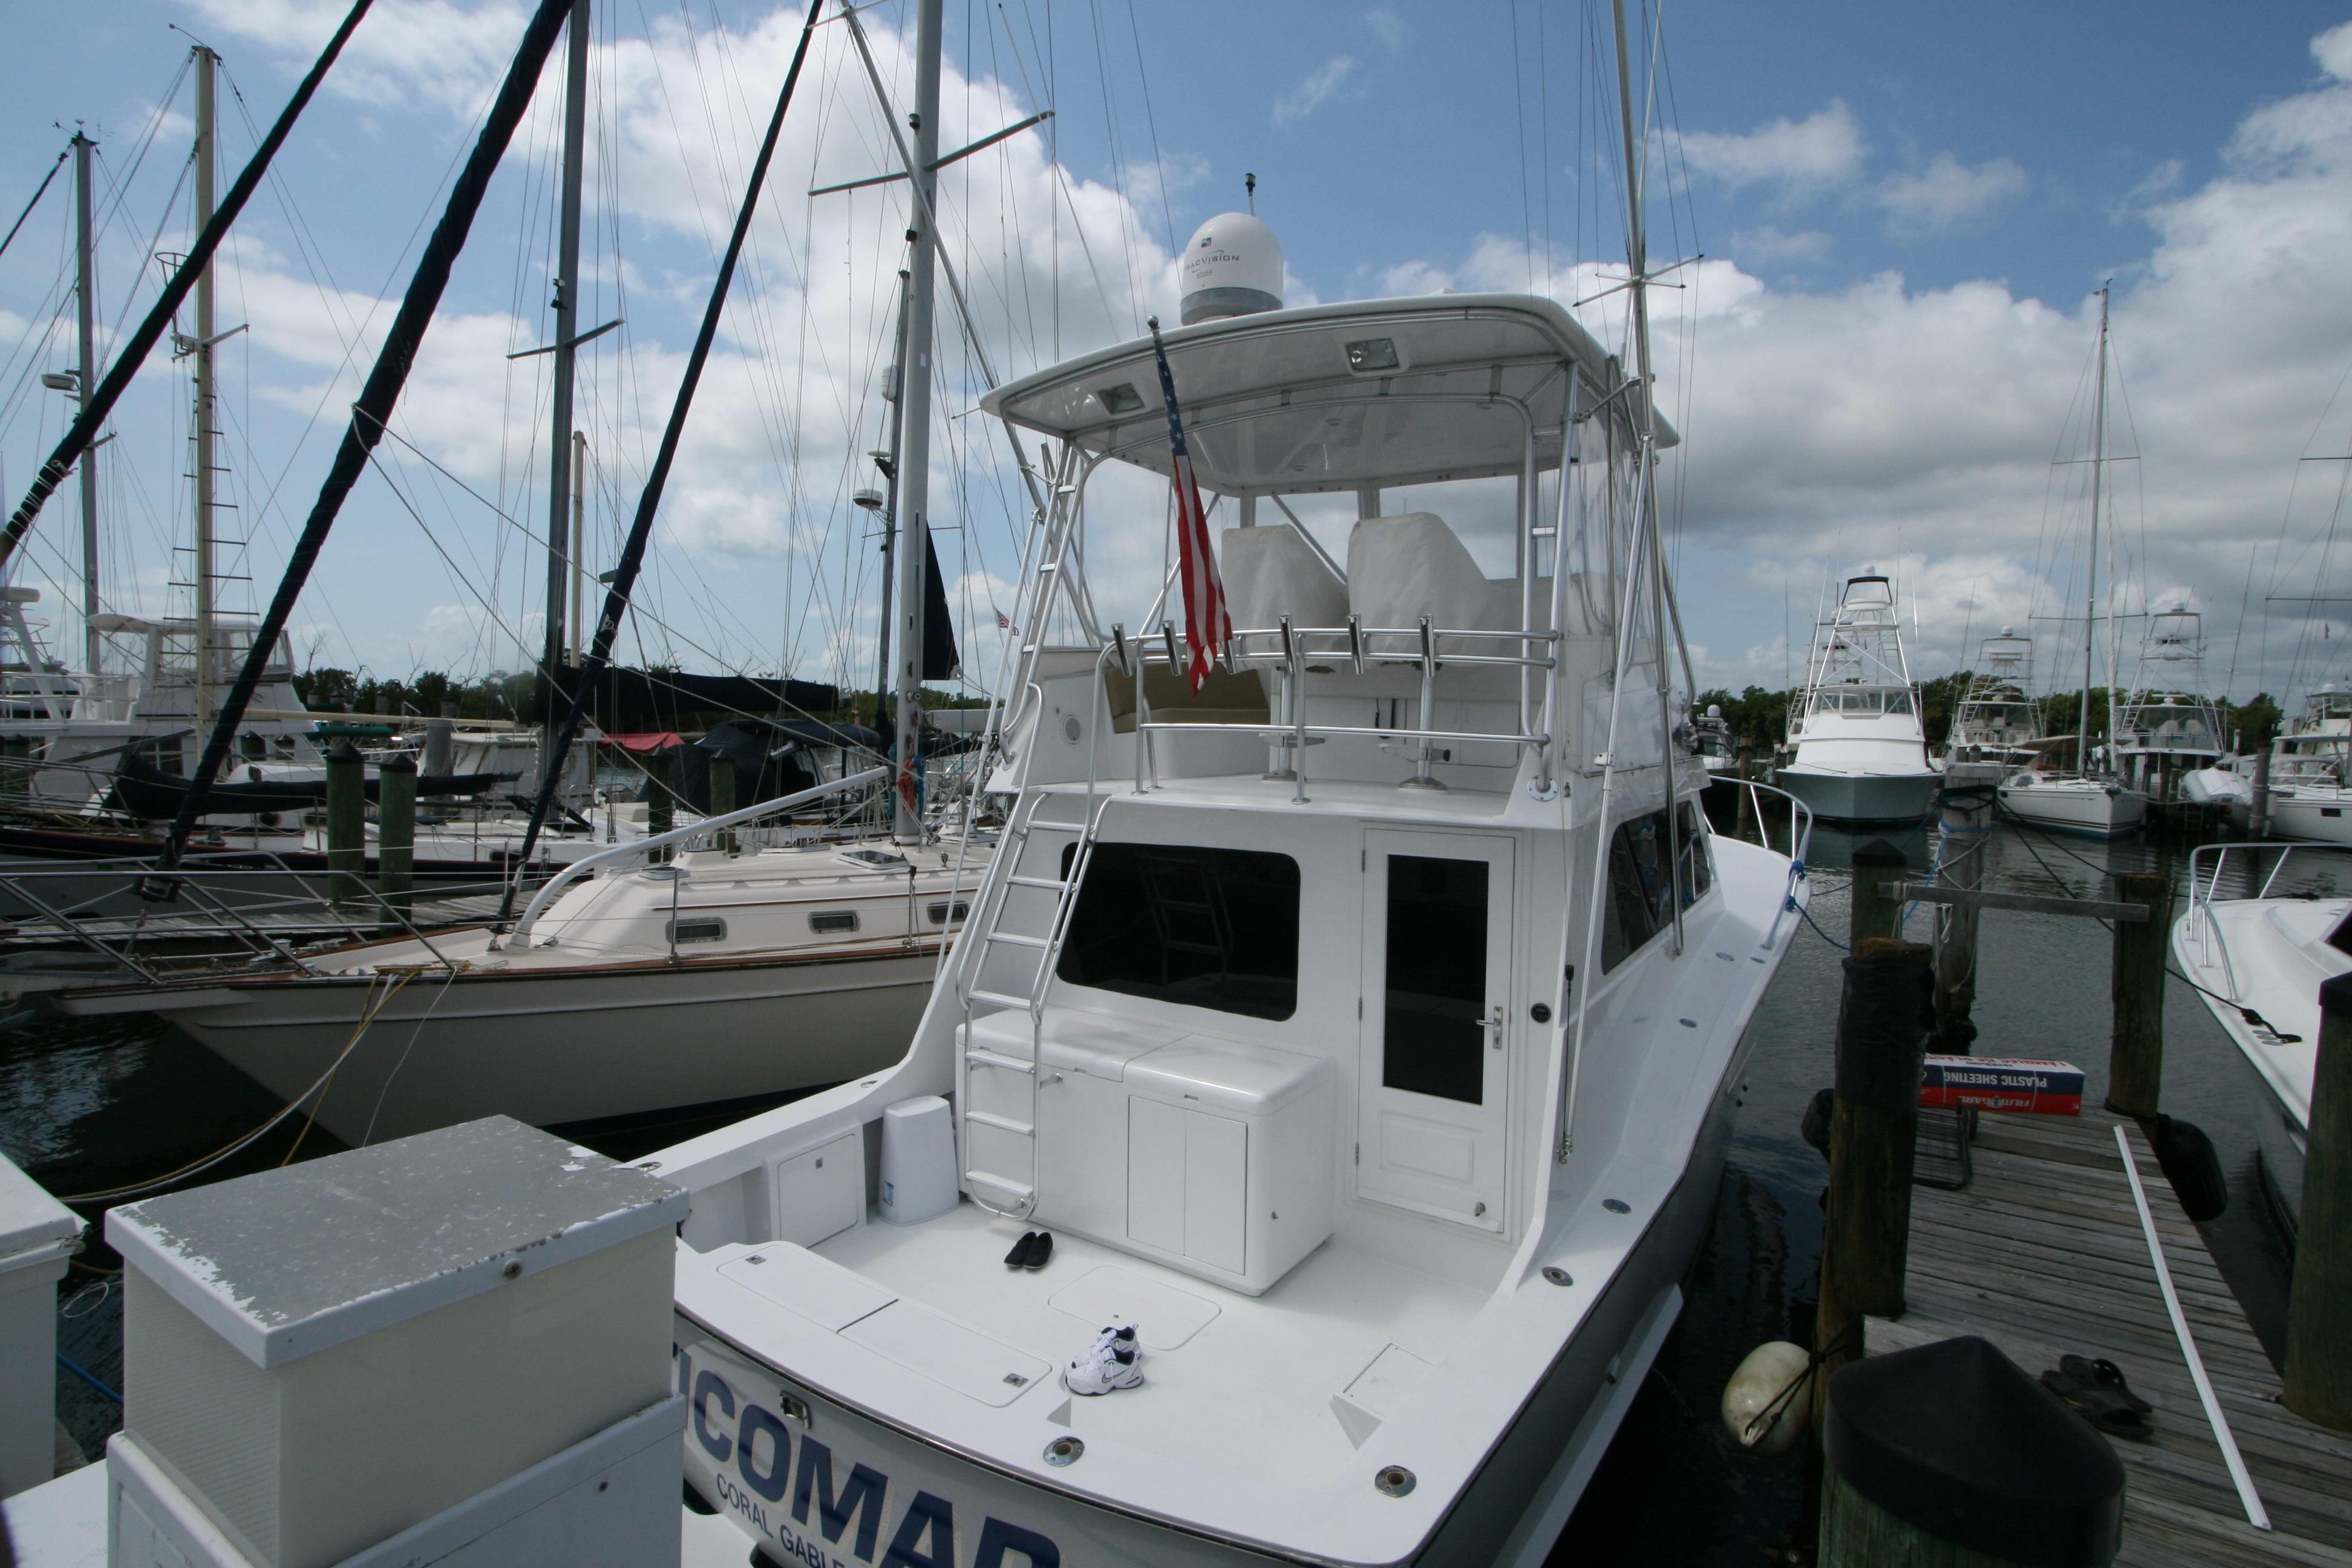 1971 hatteras power boat for sale for Sport fishing boats for sale by owner